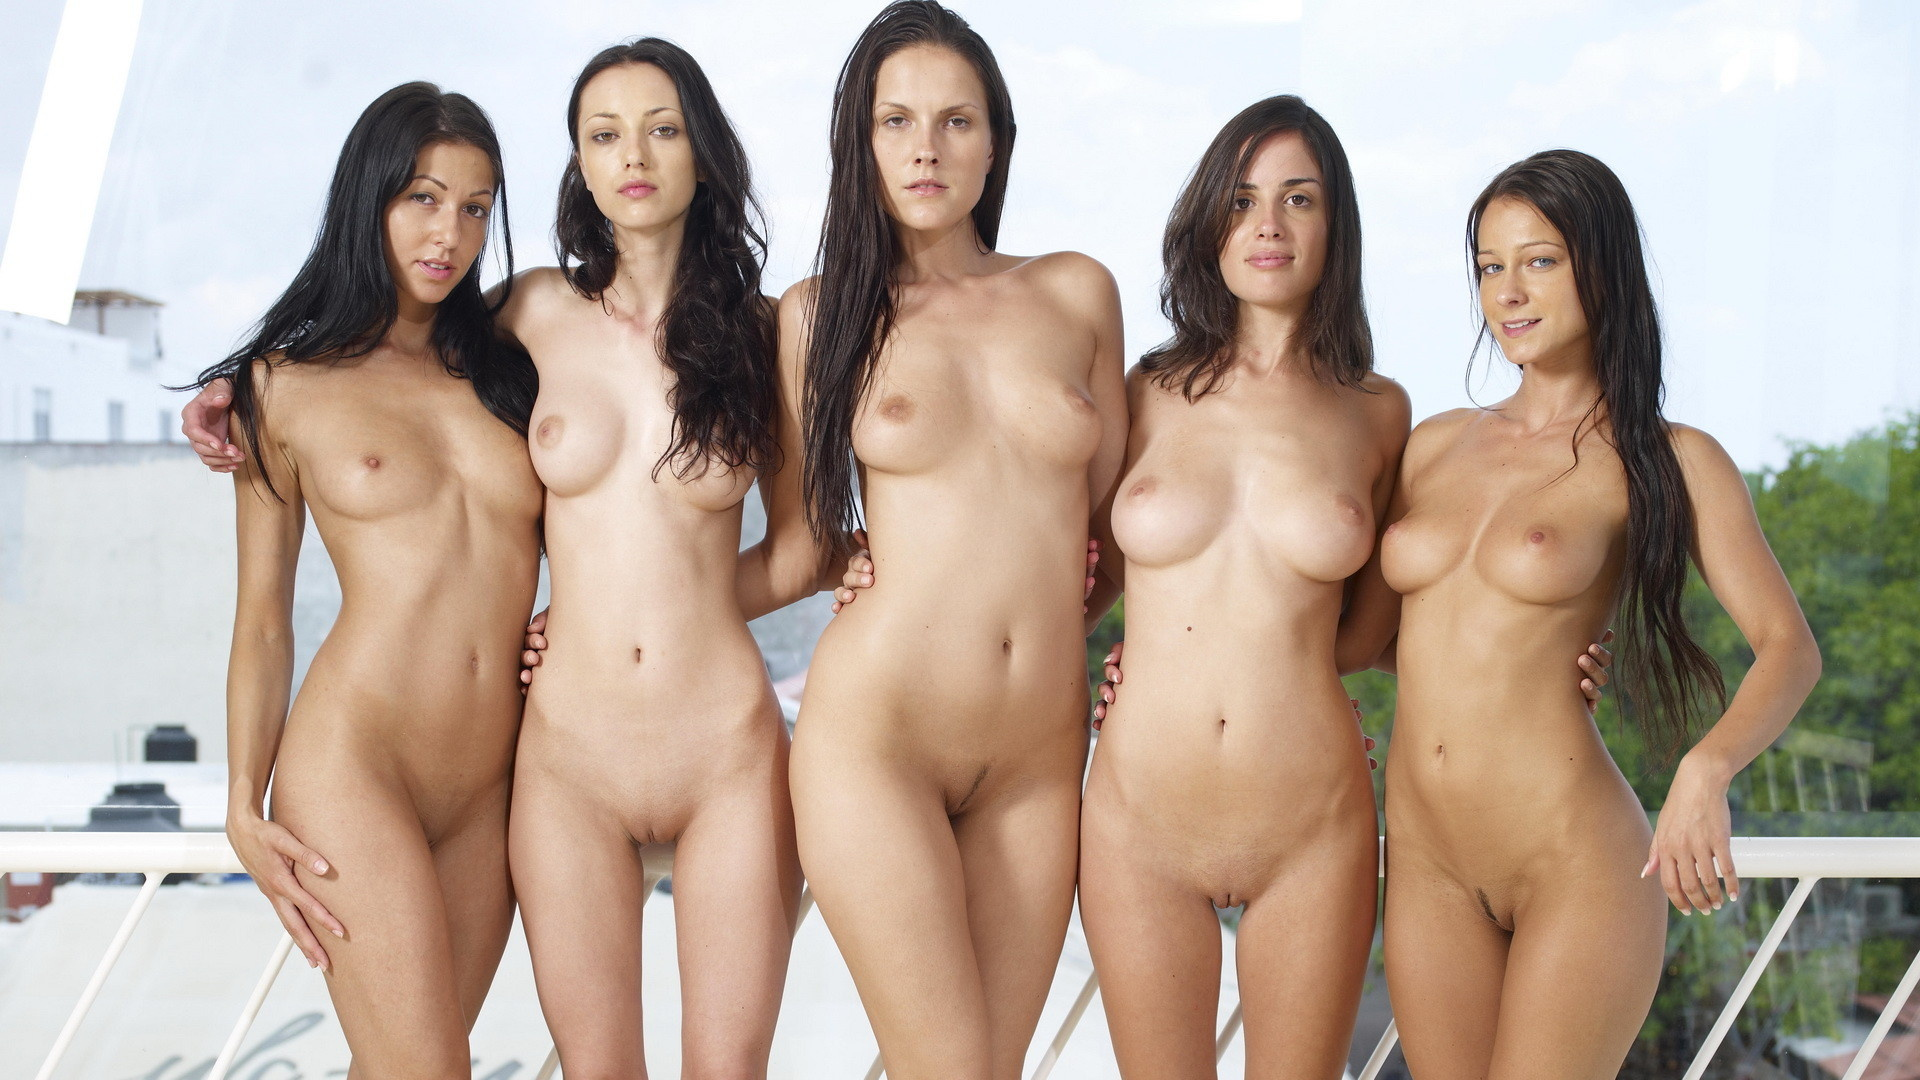 all kinds of girl porn